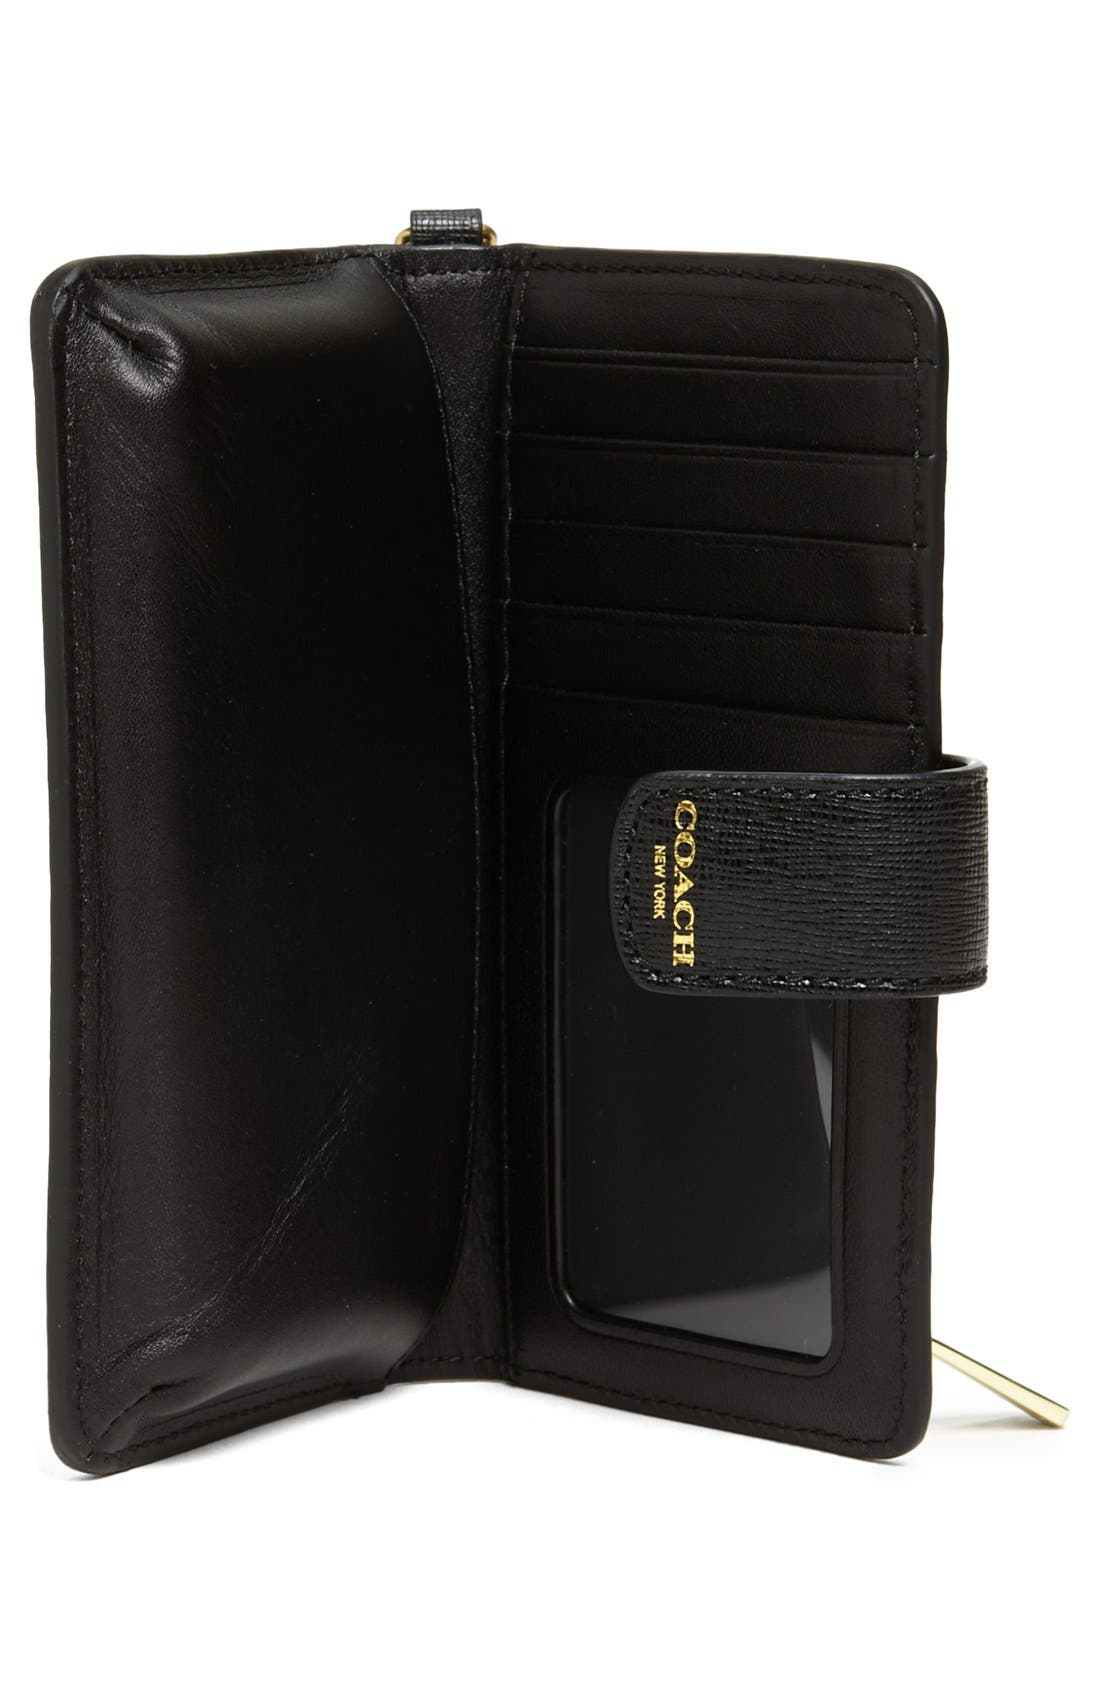 Alternate Image 2  - COACH Saffiano Leather Phone Wallet